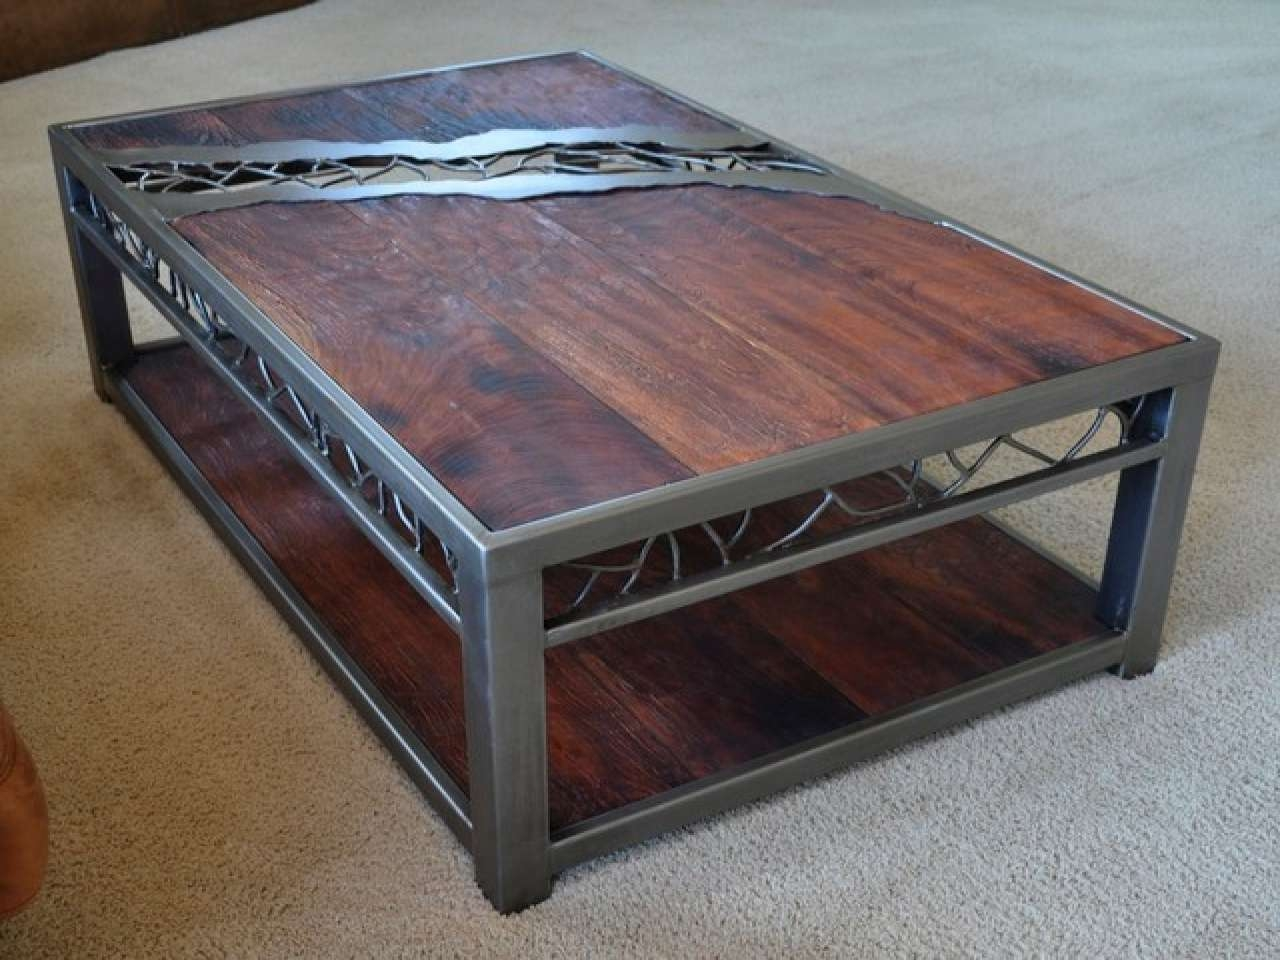 2017 Stylish Coffee Tables Within Metal Coffee Table Design Possibilities With Stylish Appeal (View 14 of 20)